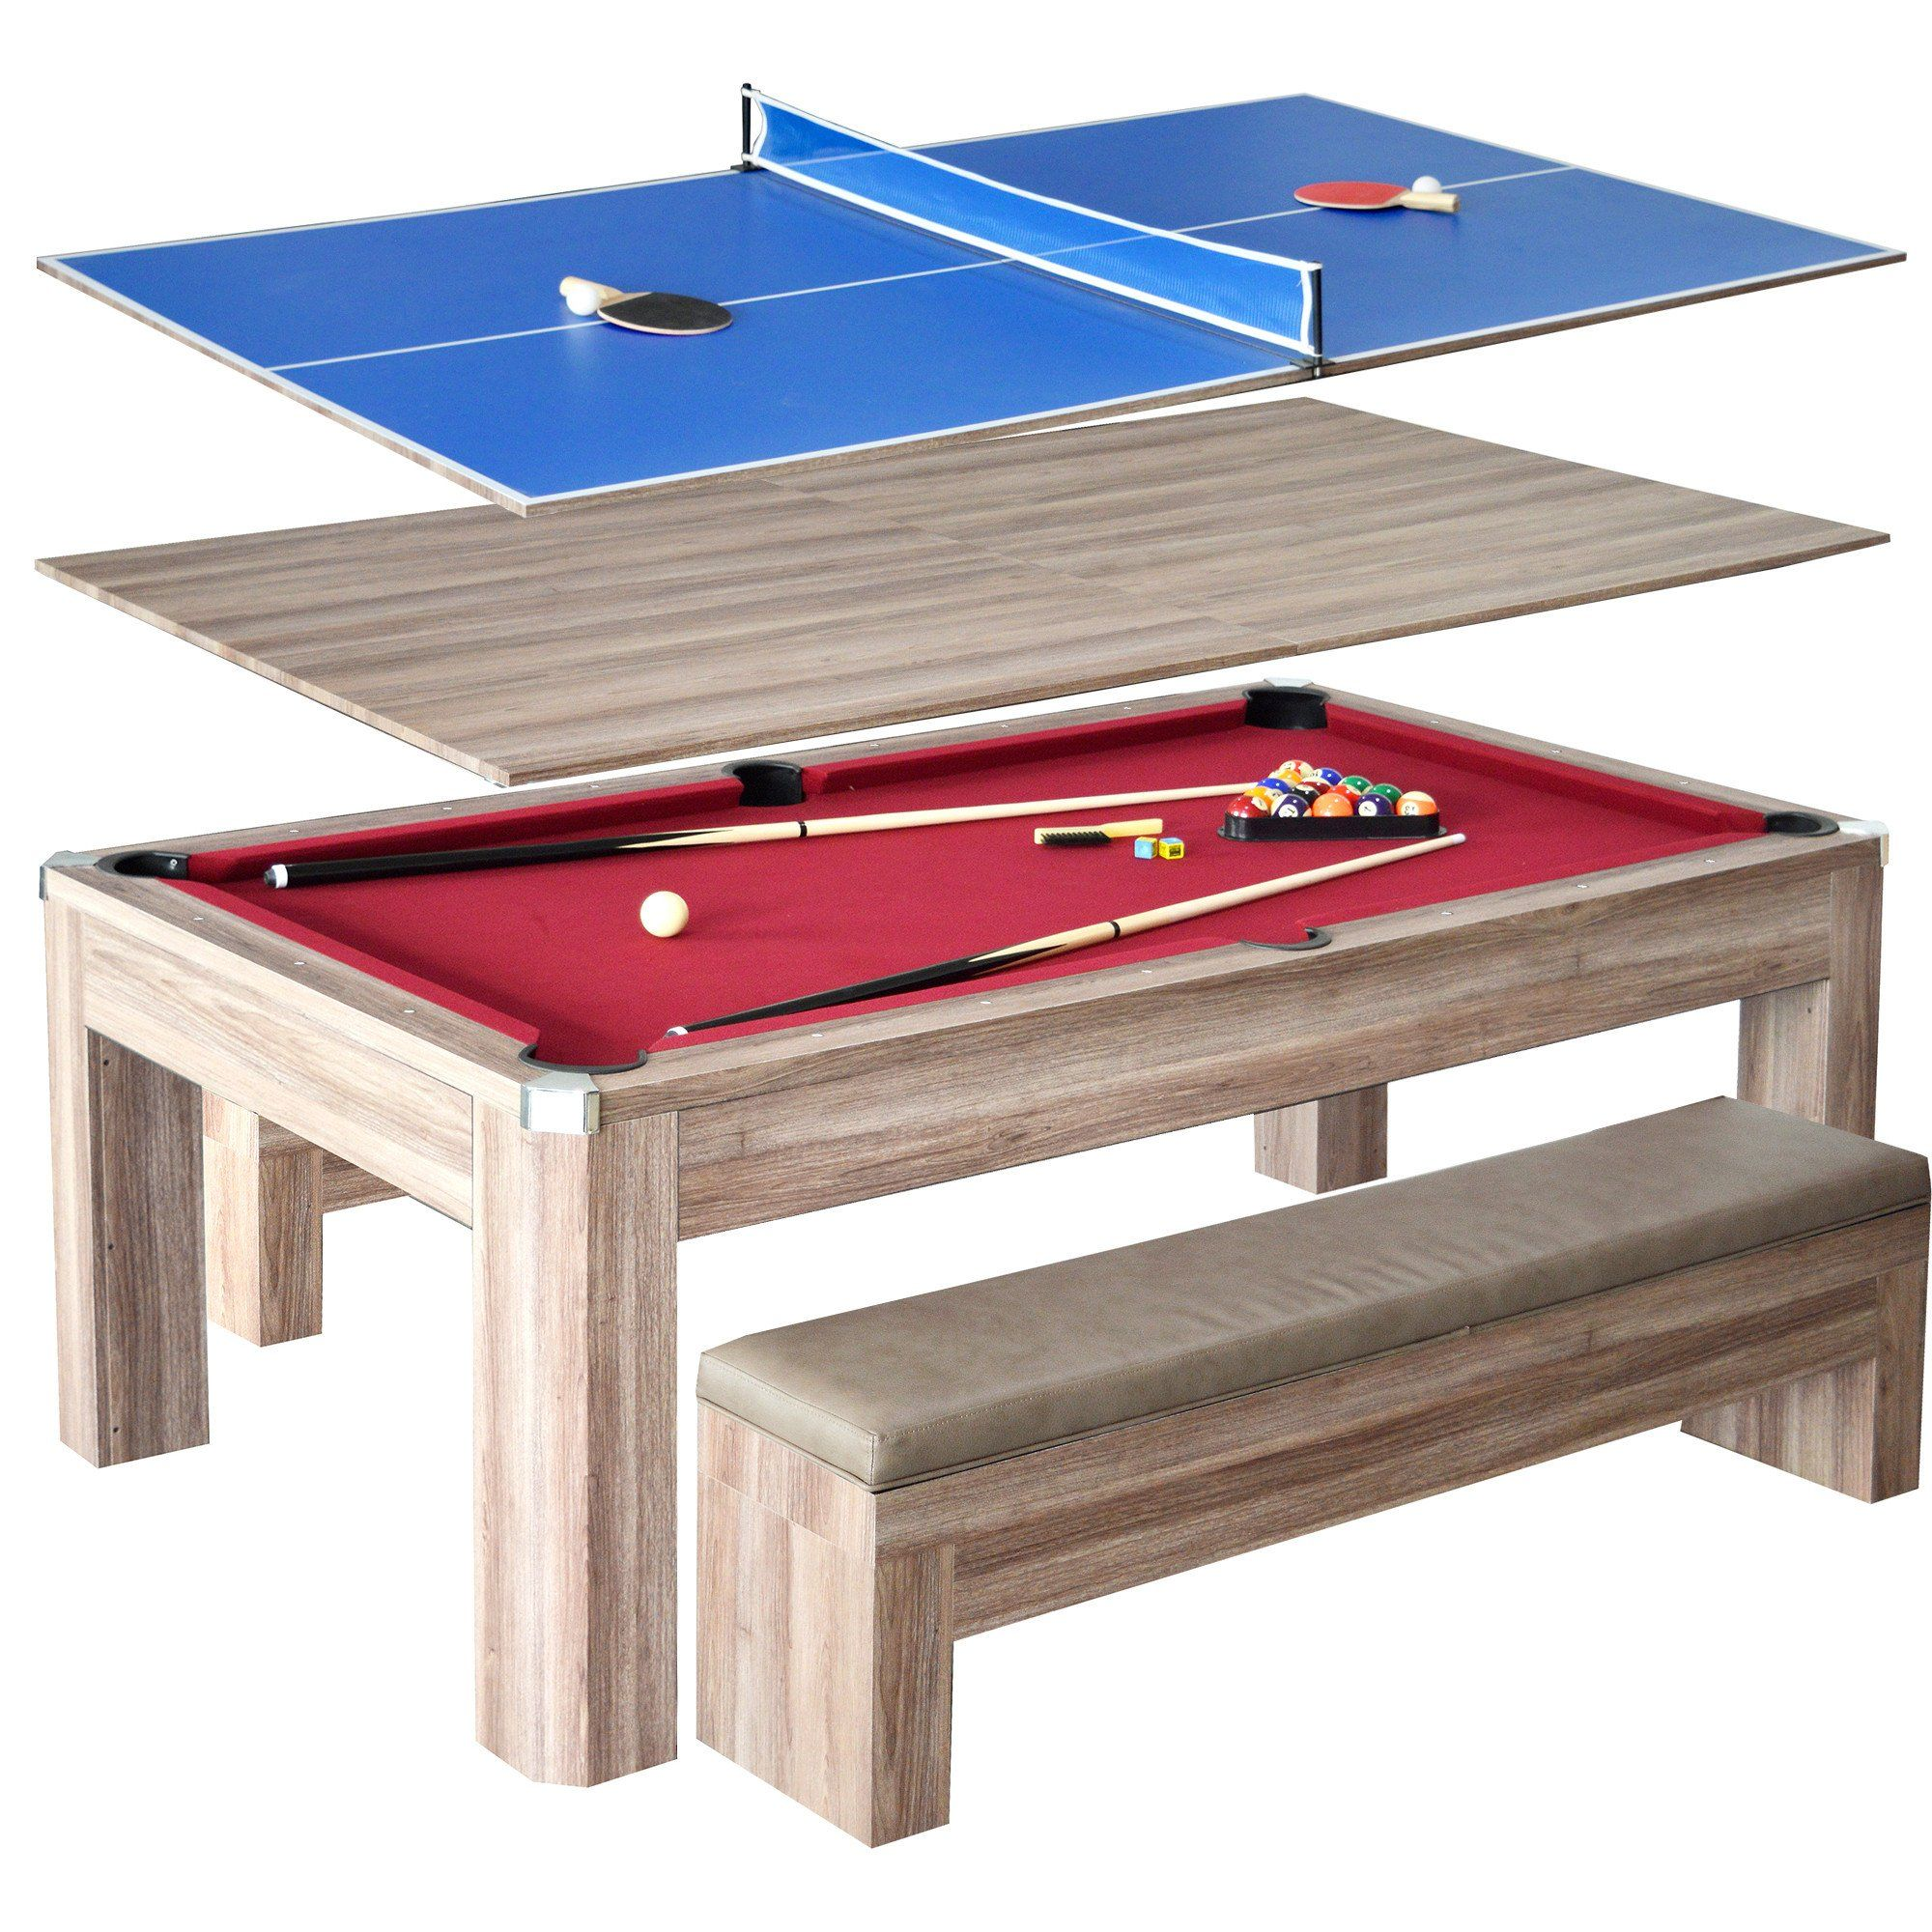 Driftwood Park Avenue 7 Combo Dining Pool Table Plus Table Tennis